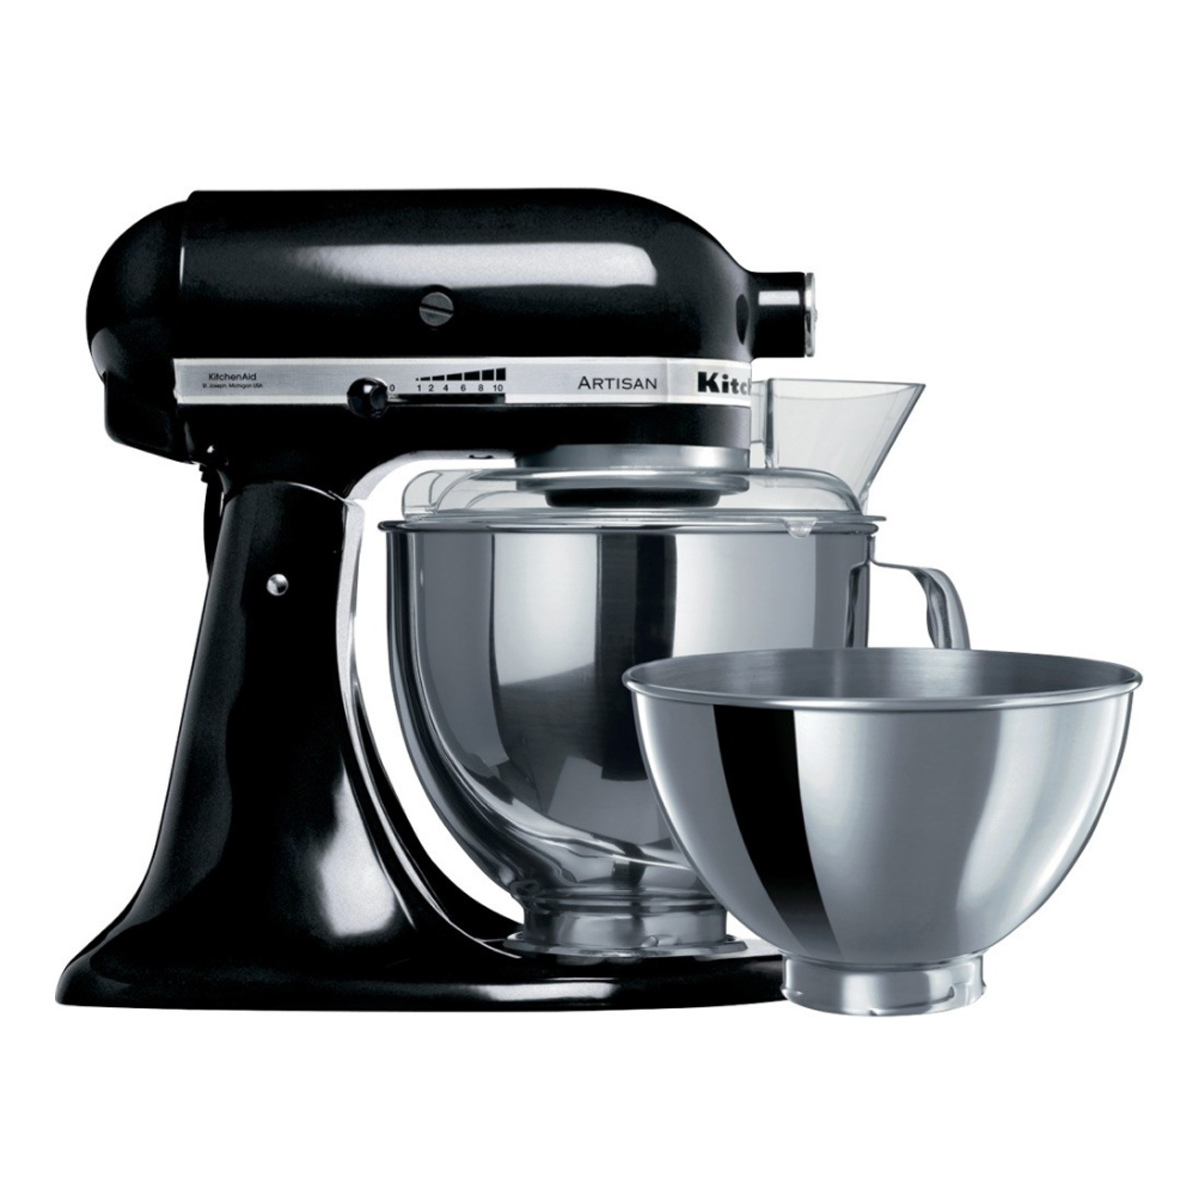 KitchenAid Artisan Series Tilt-Head Stand Mixer for the one KitchenAid Read Ratings & Reviews · Fast Shipping · Shop Our Huge Selection · Deals of the Day2,,+ followers on Twitter.